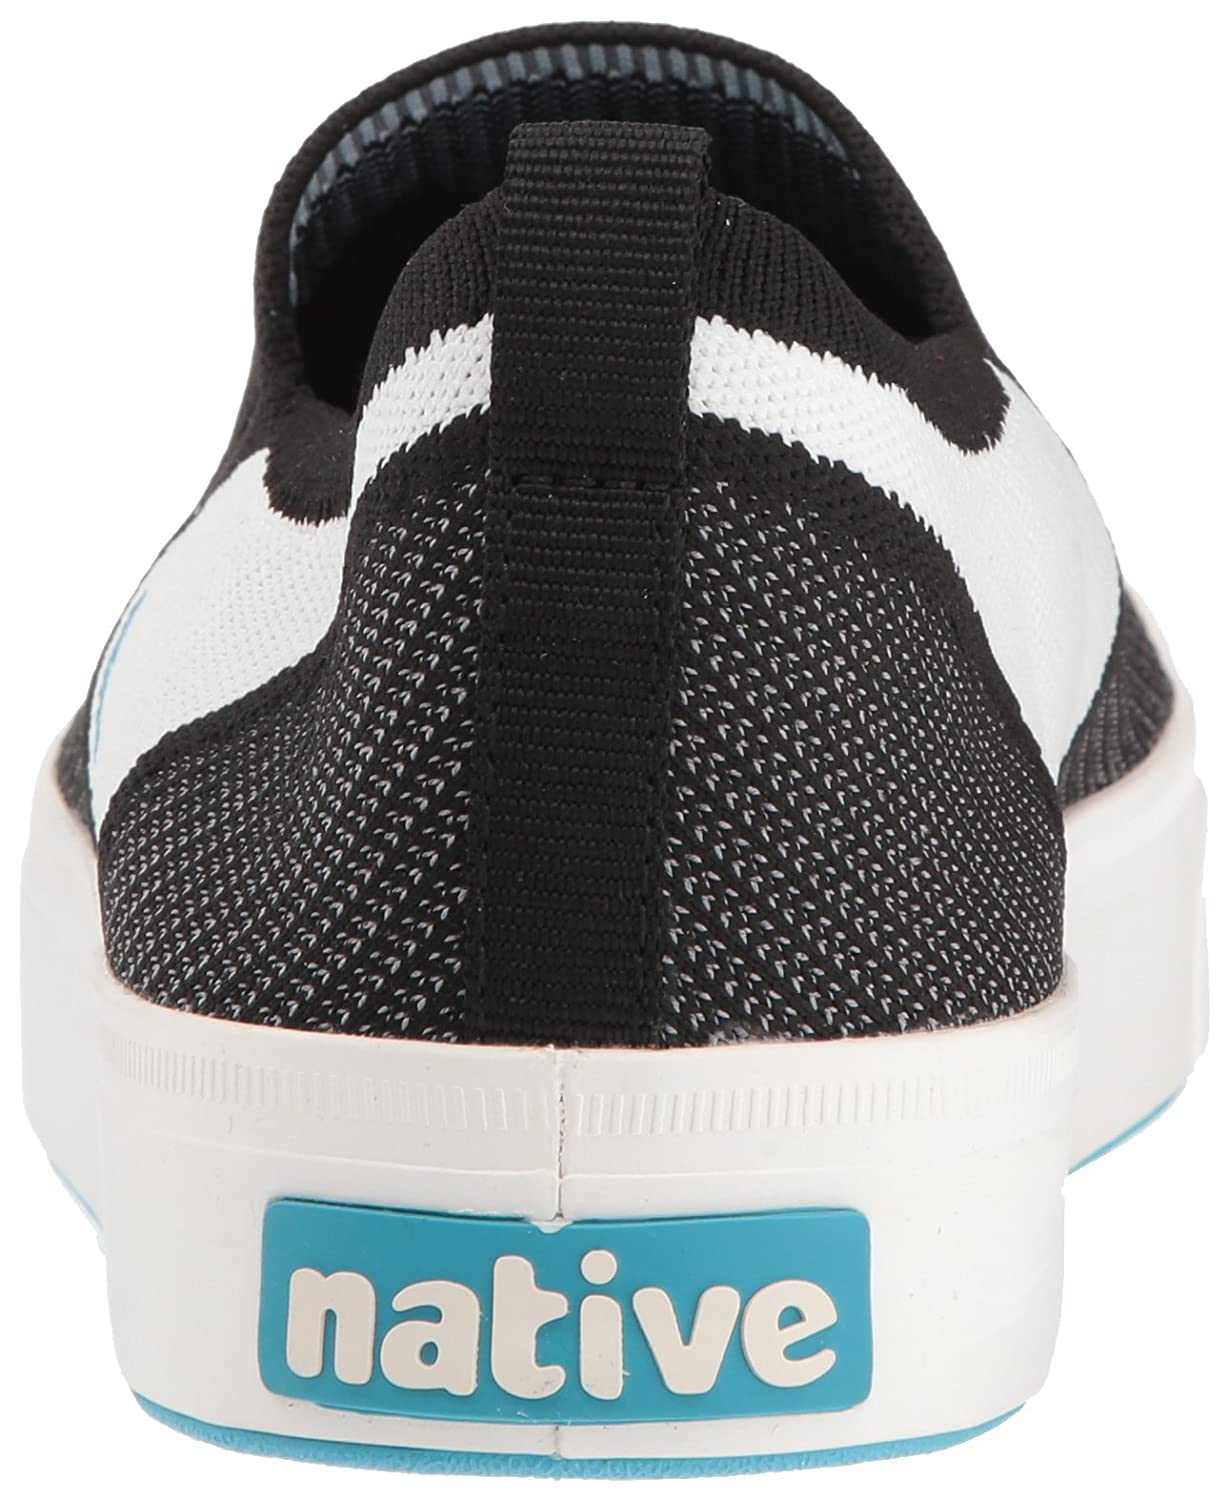 native M Women's Miles Water Shoe B071WPGXT4 5 Men's M native US|Jiffy Black/Shell White/Shell White 2031d3